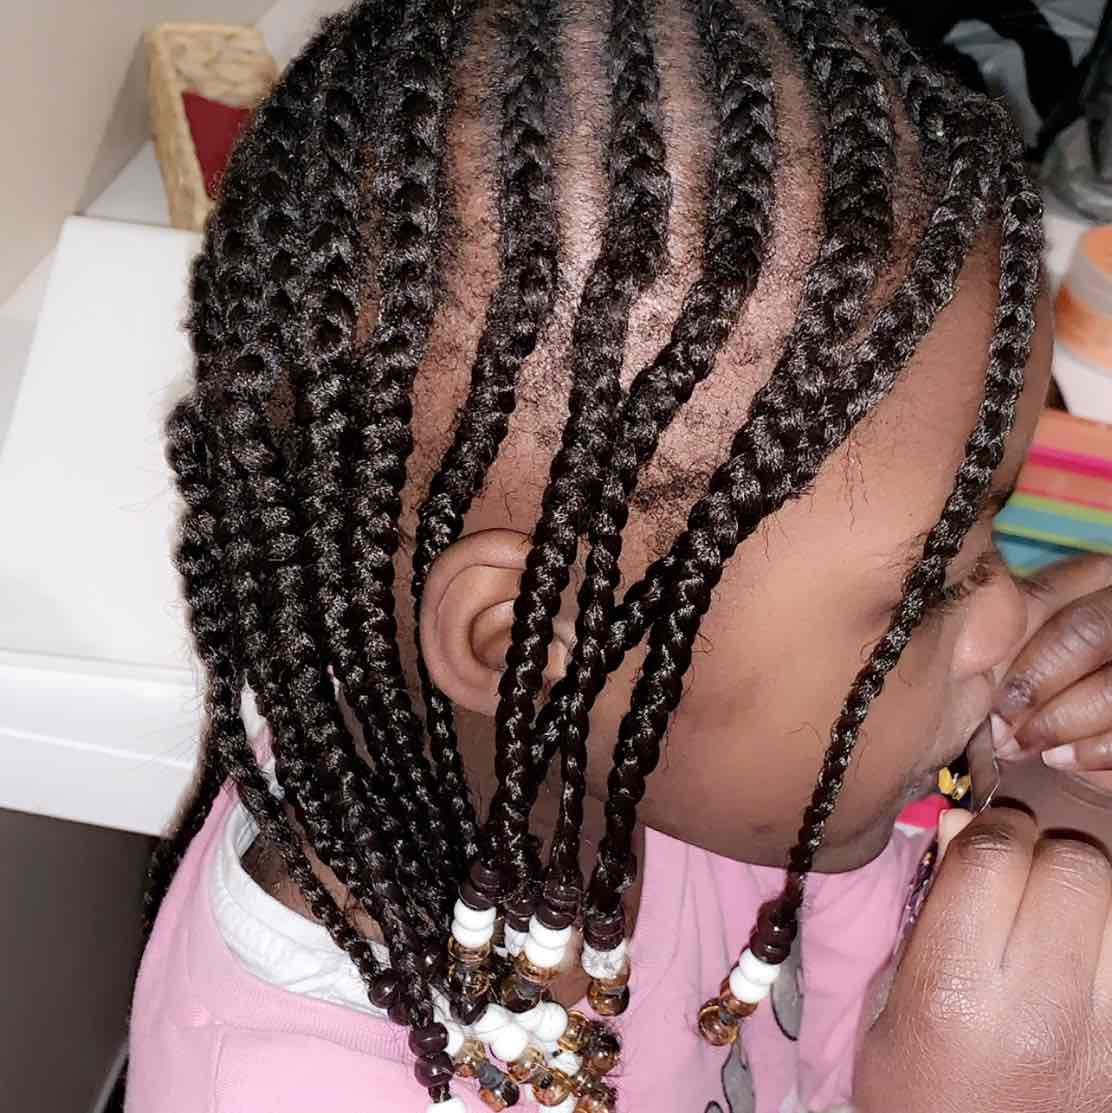 salon de coiffure afro tresse tresses box braids crochet braids vanilles tissages paris 75 77 78 91 92 93 94 95 IWEDBQZU